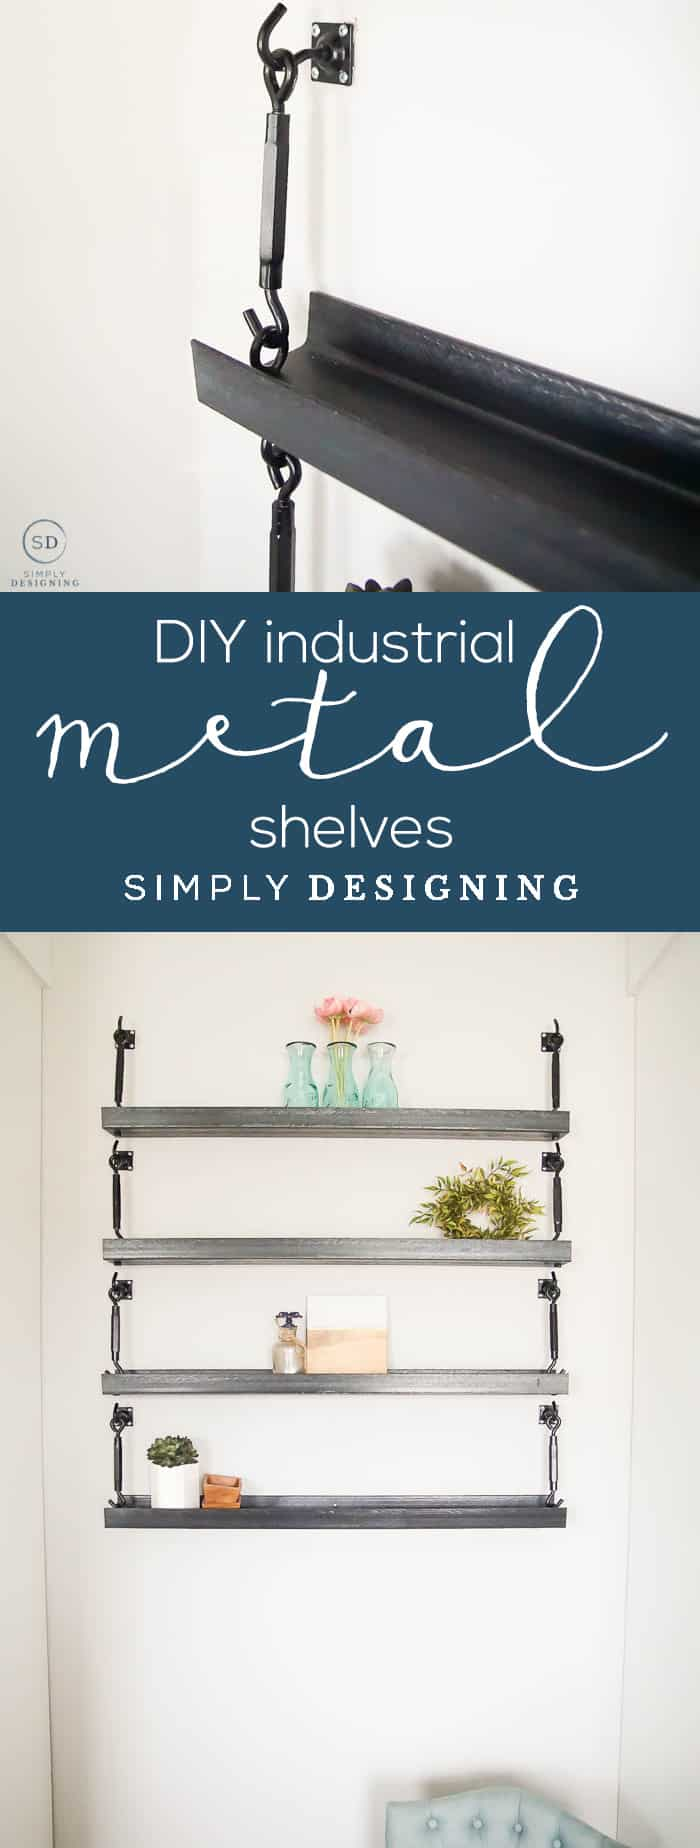 How to Make Industrial Metal Shelves - DIY Industrial Metal Shelves - DIY Metal Shelves